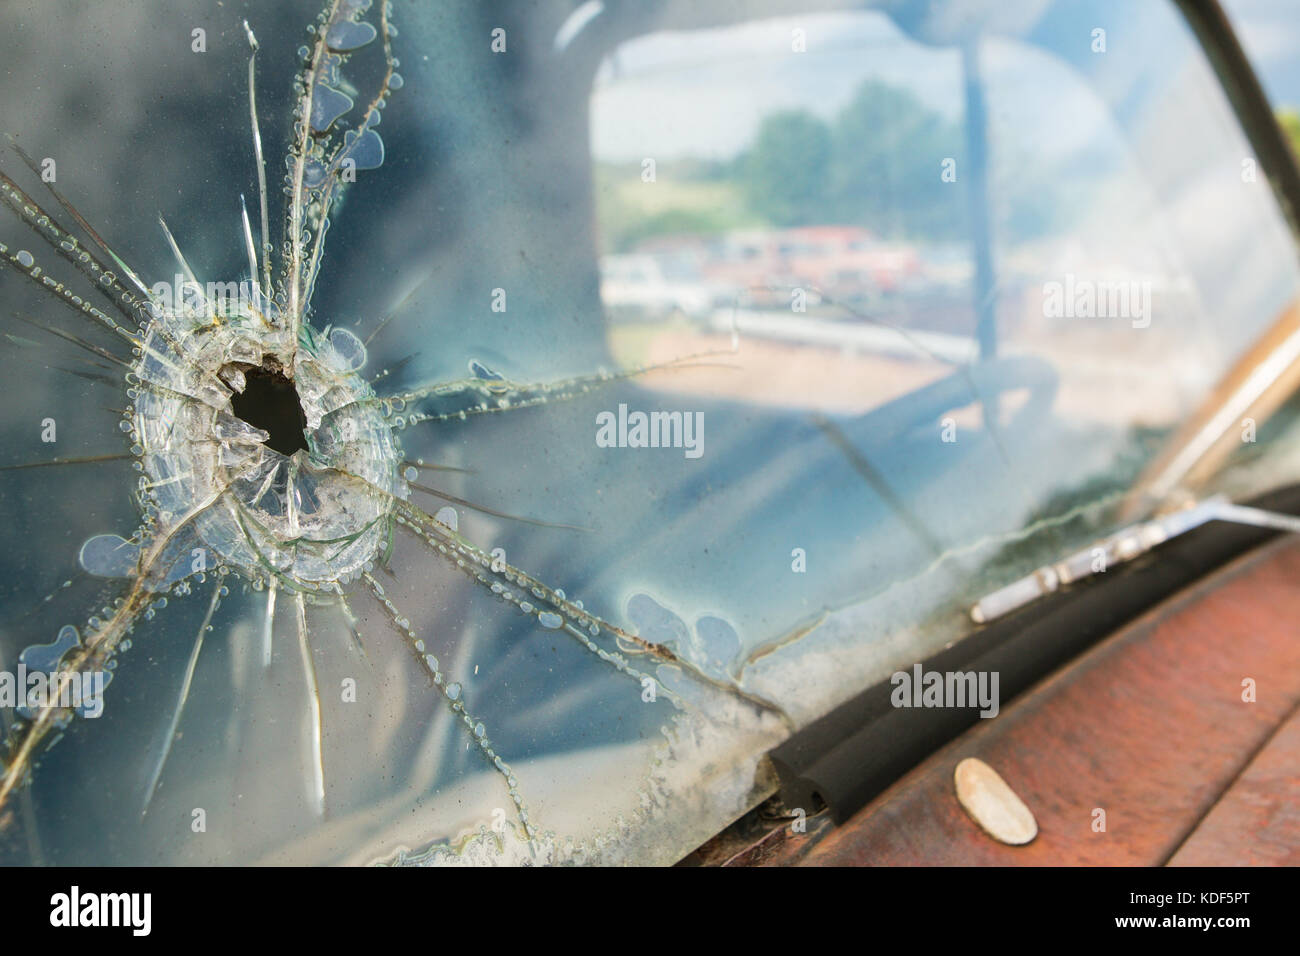 The windshield of a junkyard vehicle is cracked and splintered from what appears to be a bullet hole - Stock Image